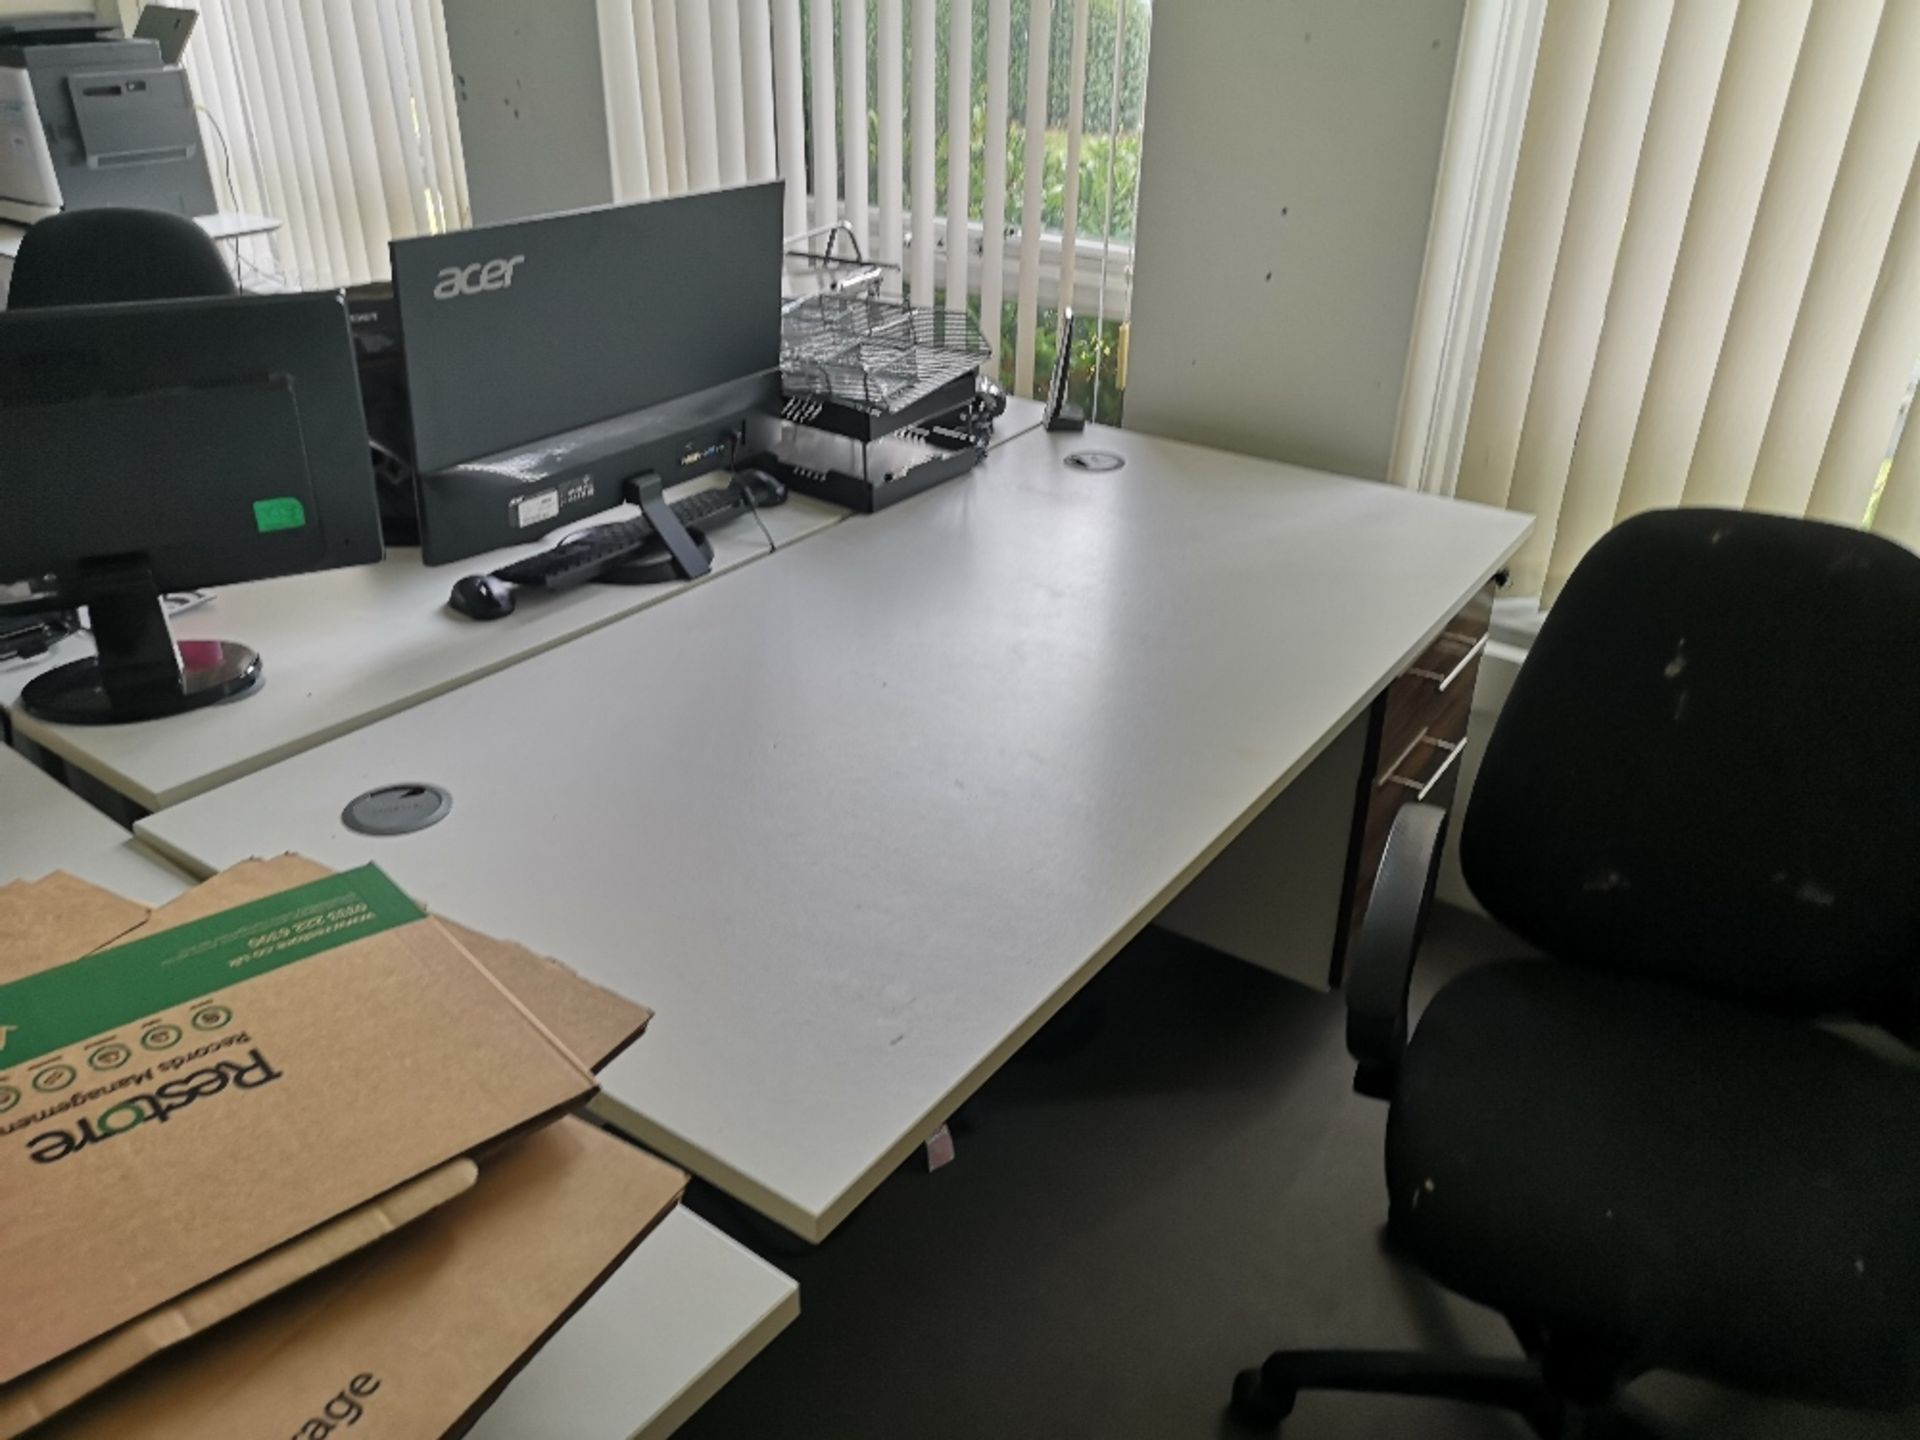 Office Furniture Contents of Room - Image 6 of 9